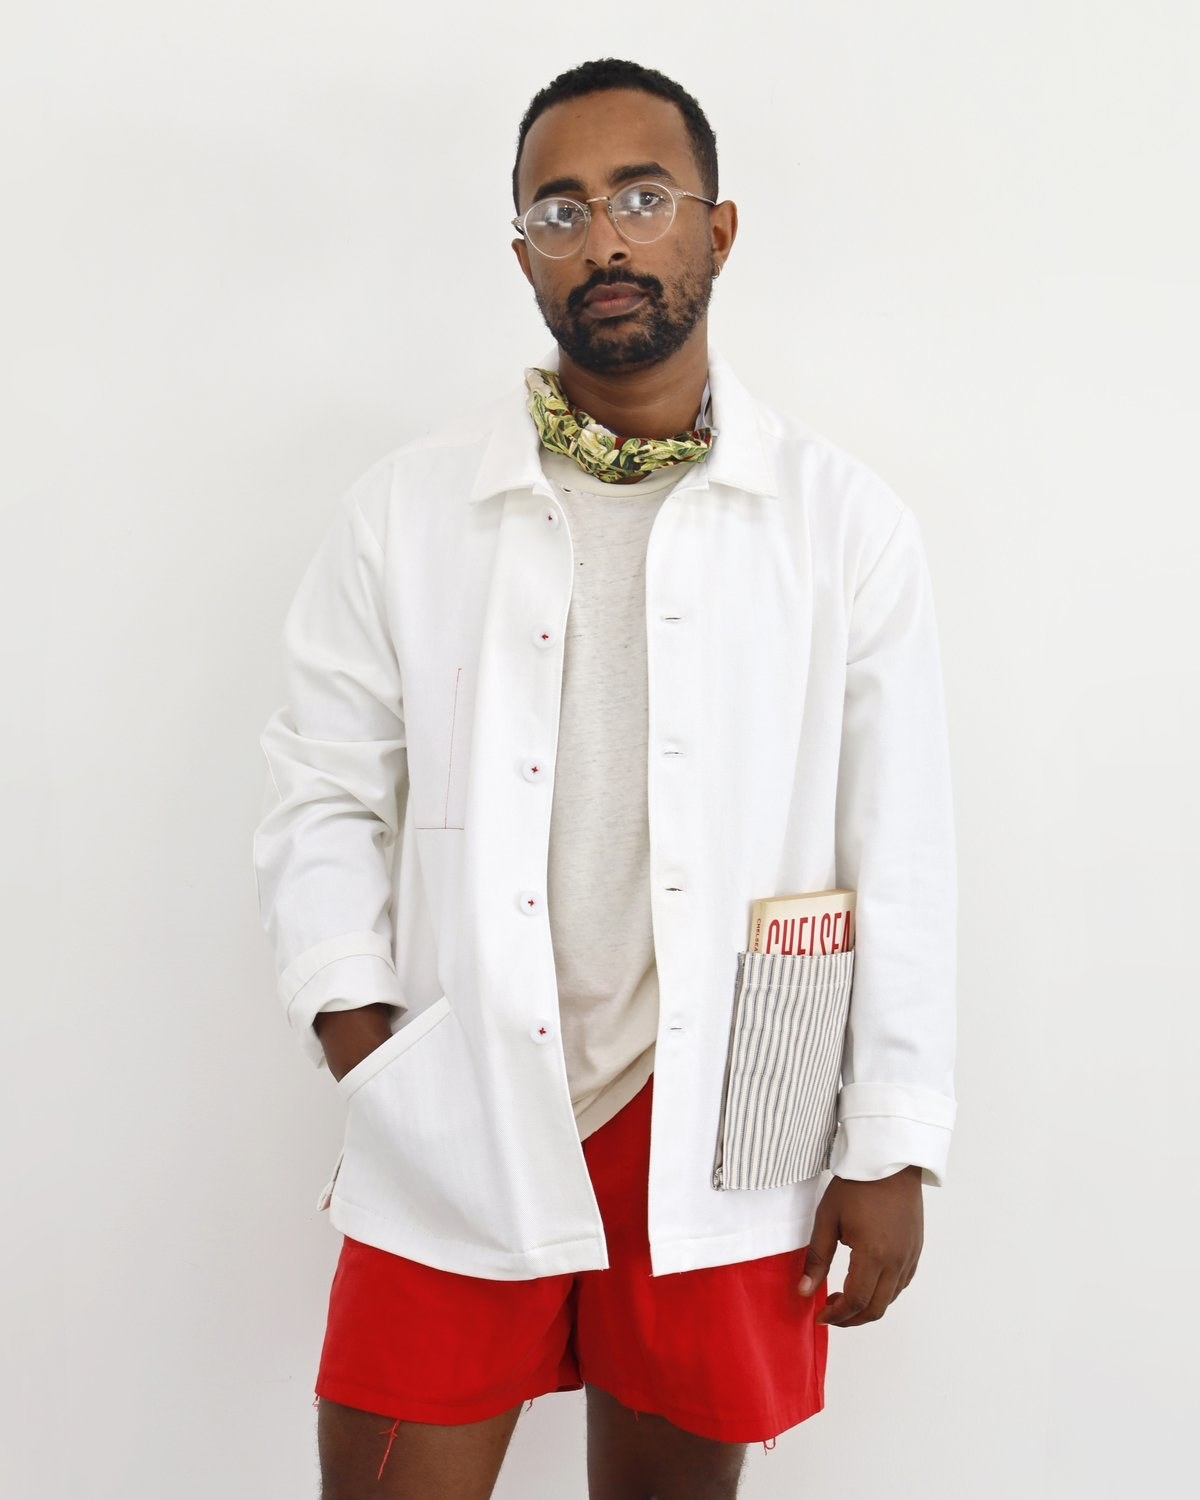 A model in the white jacket with a striped pocket with a book inside, plus other smaller pockets